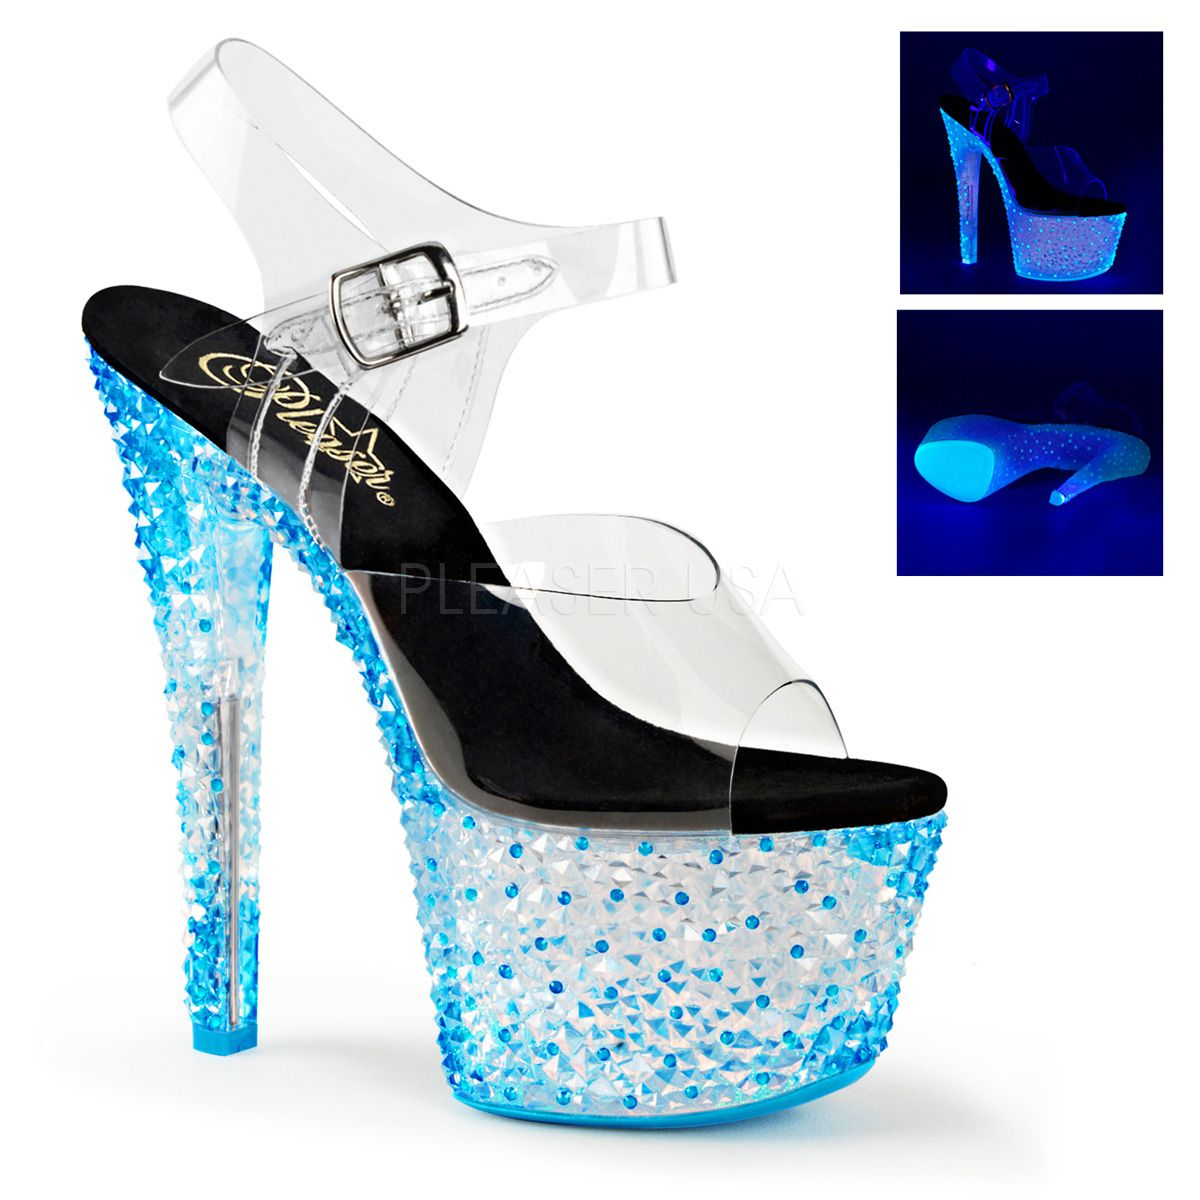 35f3f1081abf26 Pleaser SHOES   BOOTS   Platforms (Exotic Dancing)   7